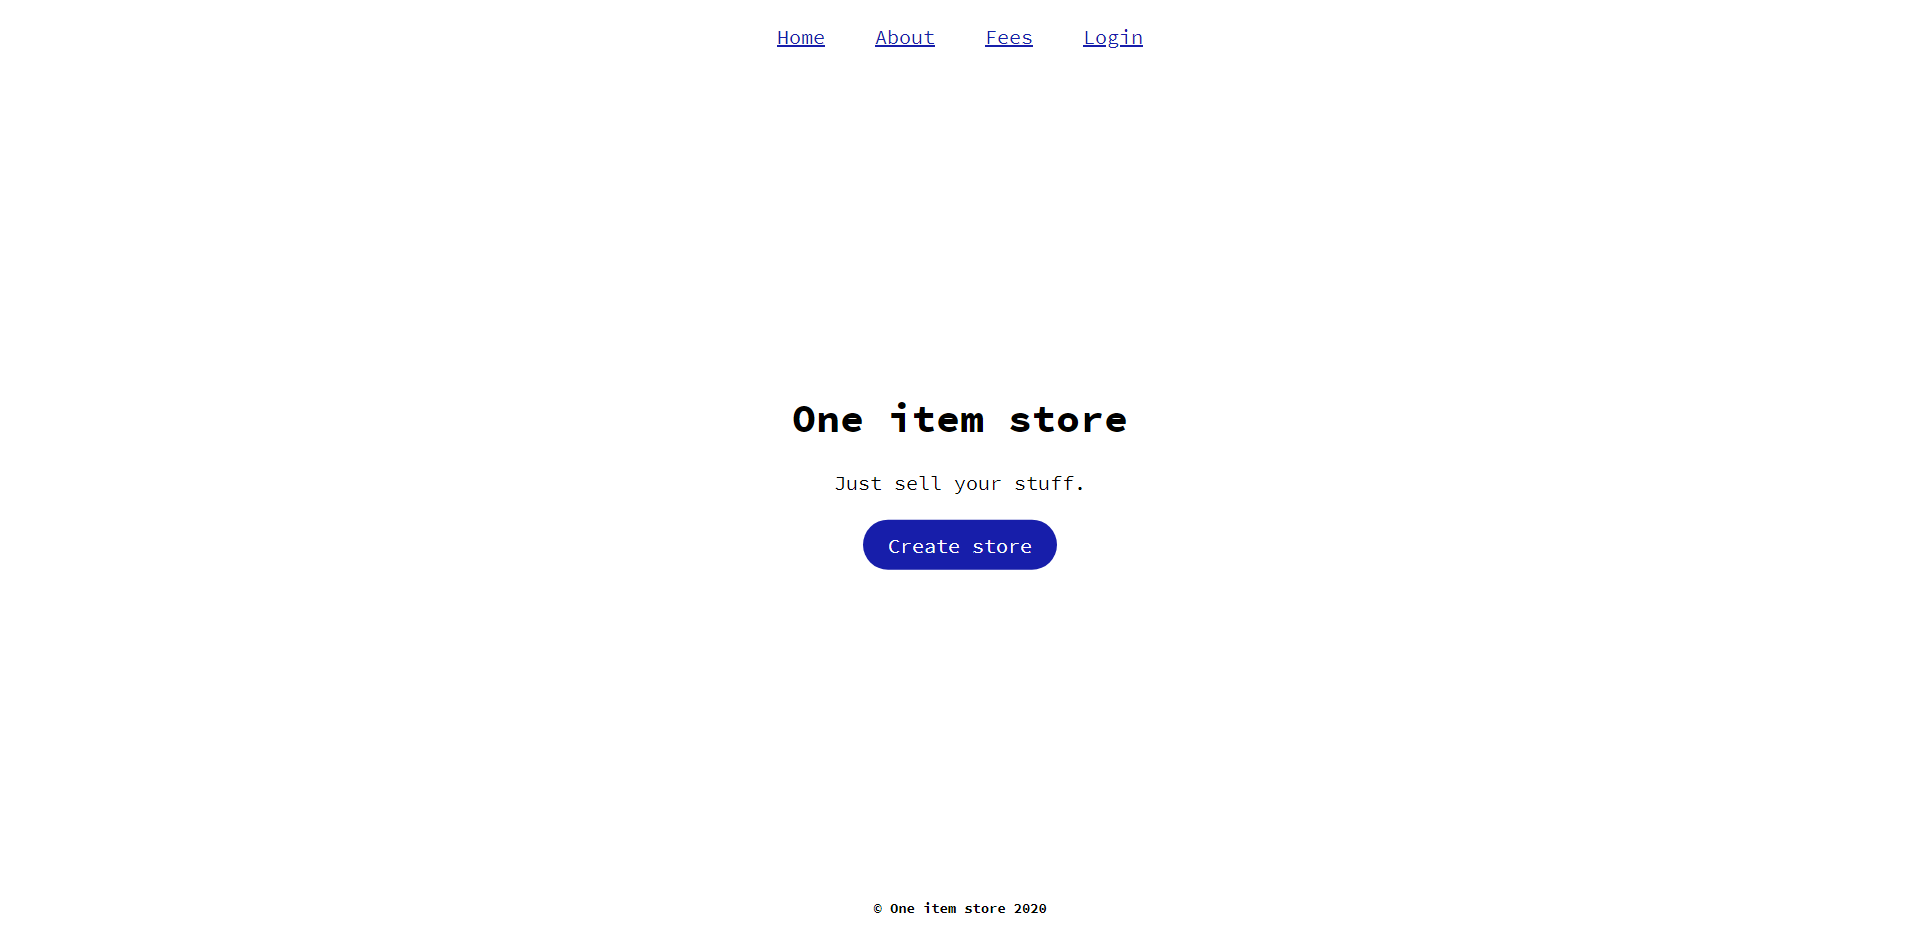 one item store homepage